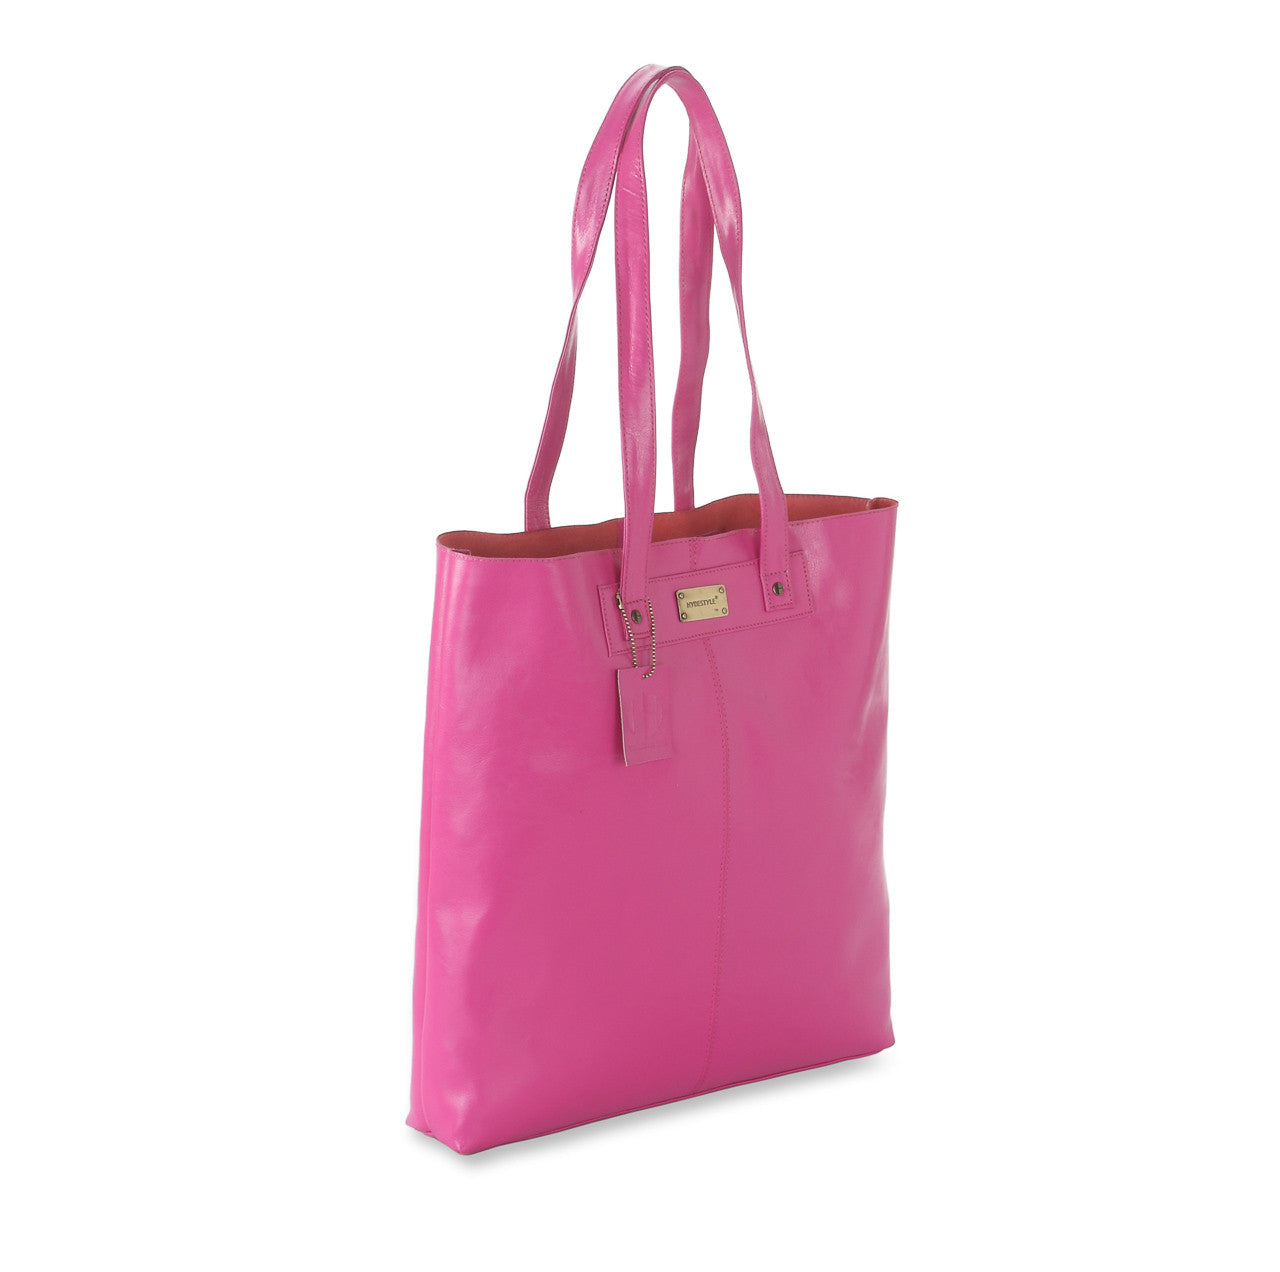 Trenz leather aura tote bag #LB17 Pink